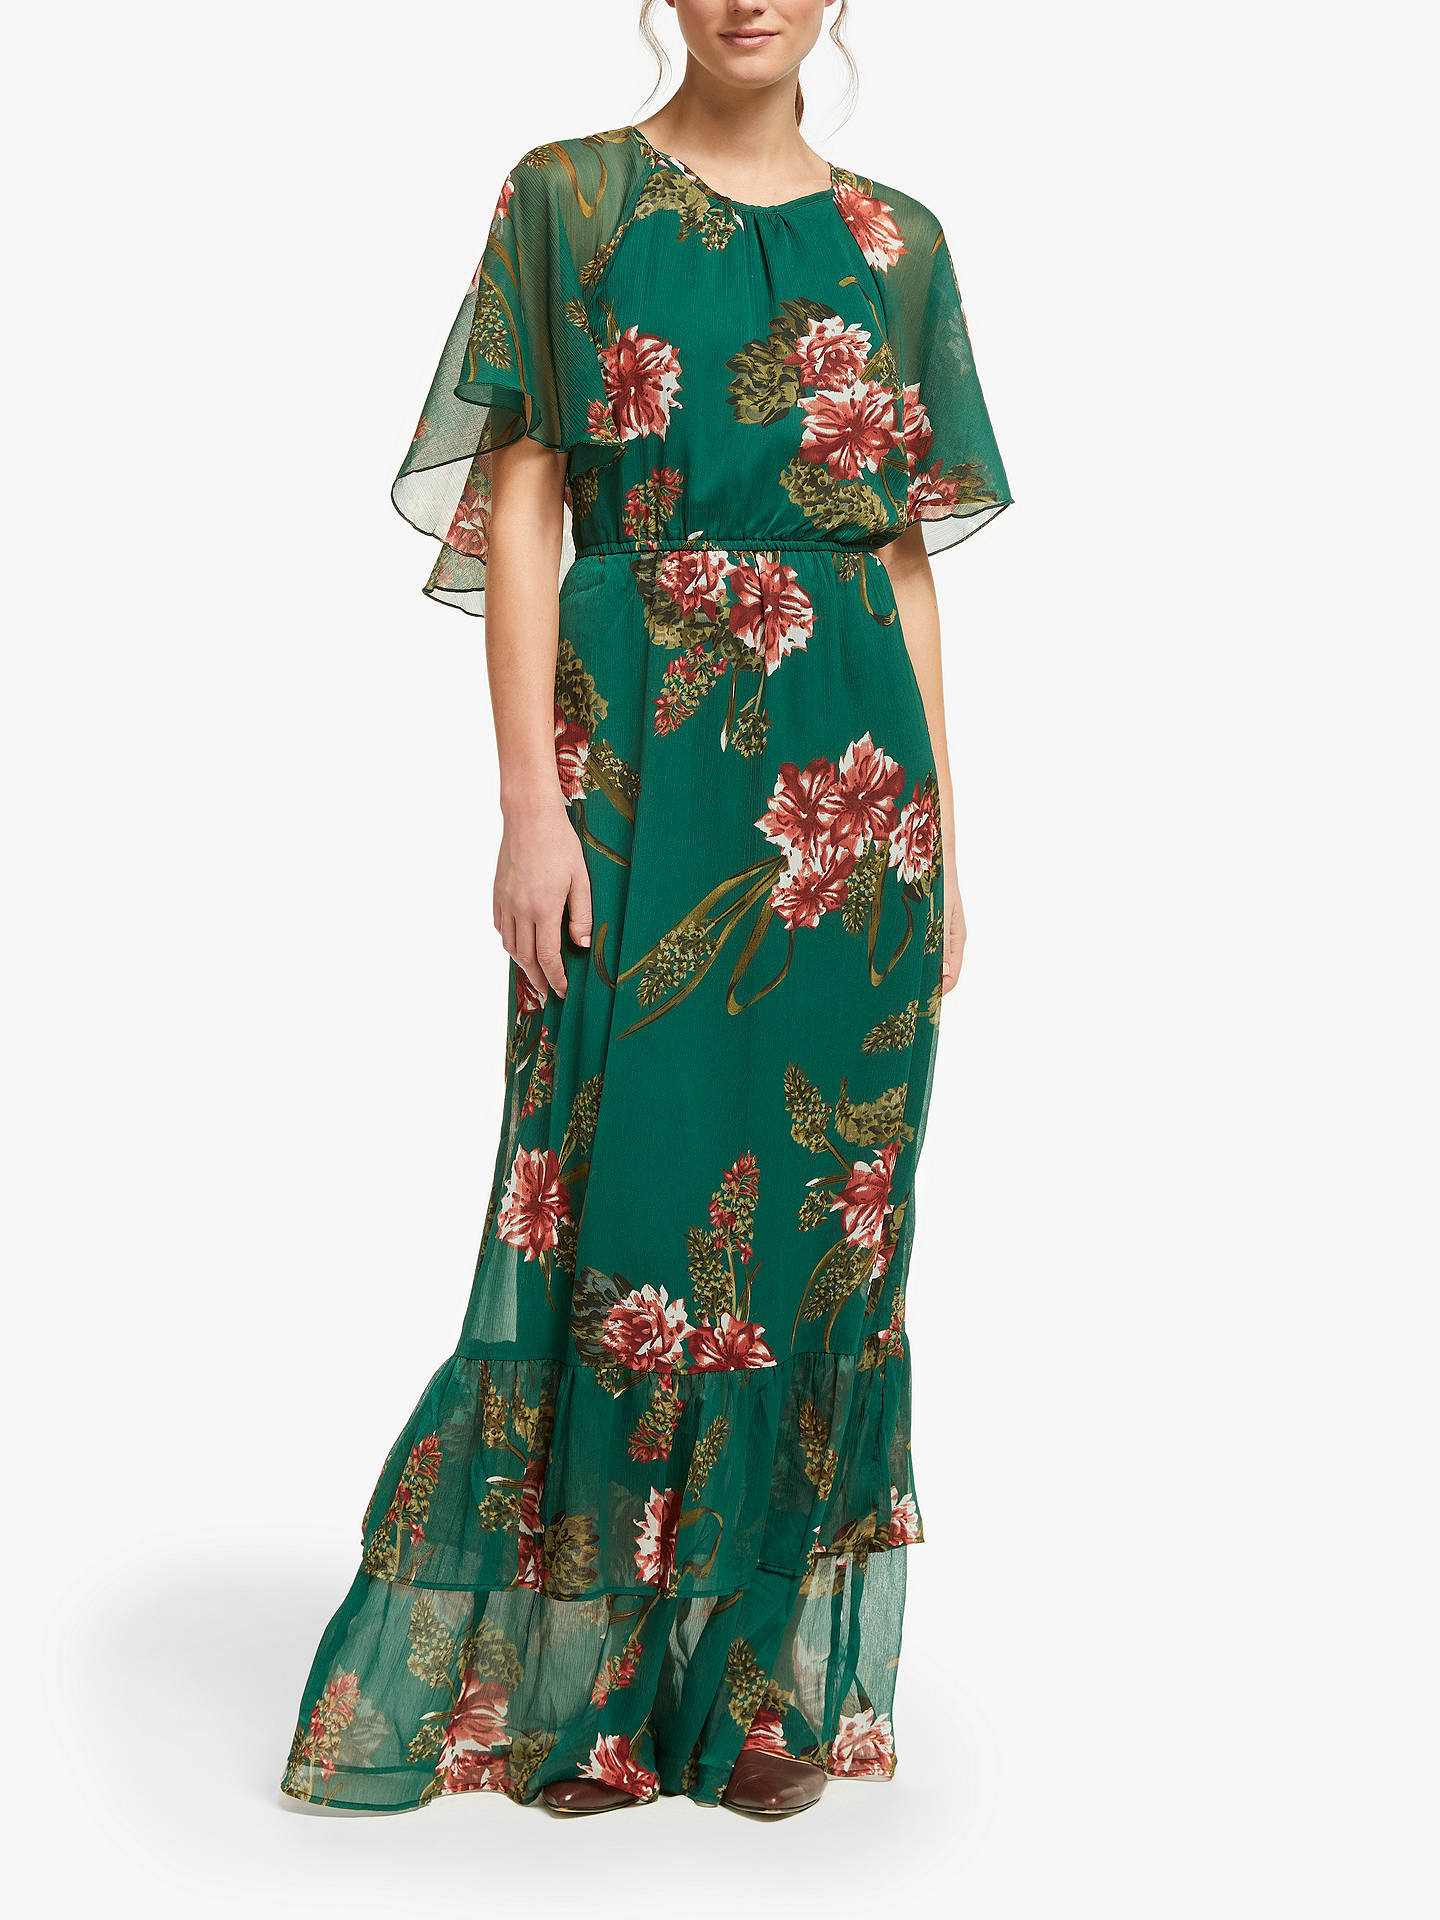 5b808517c59 Y.A.S Hilma Maxi Dress, Green at John Lewis & Partners